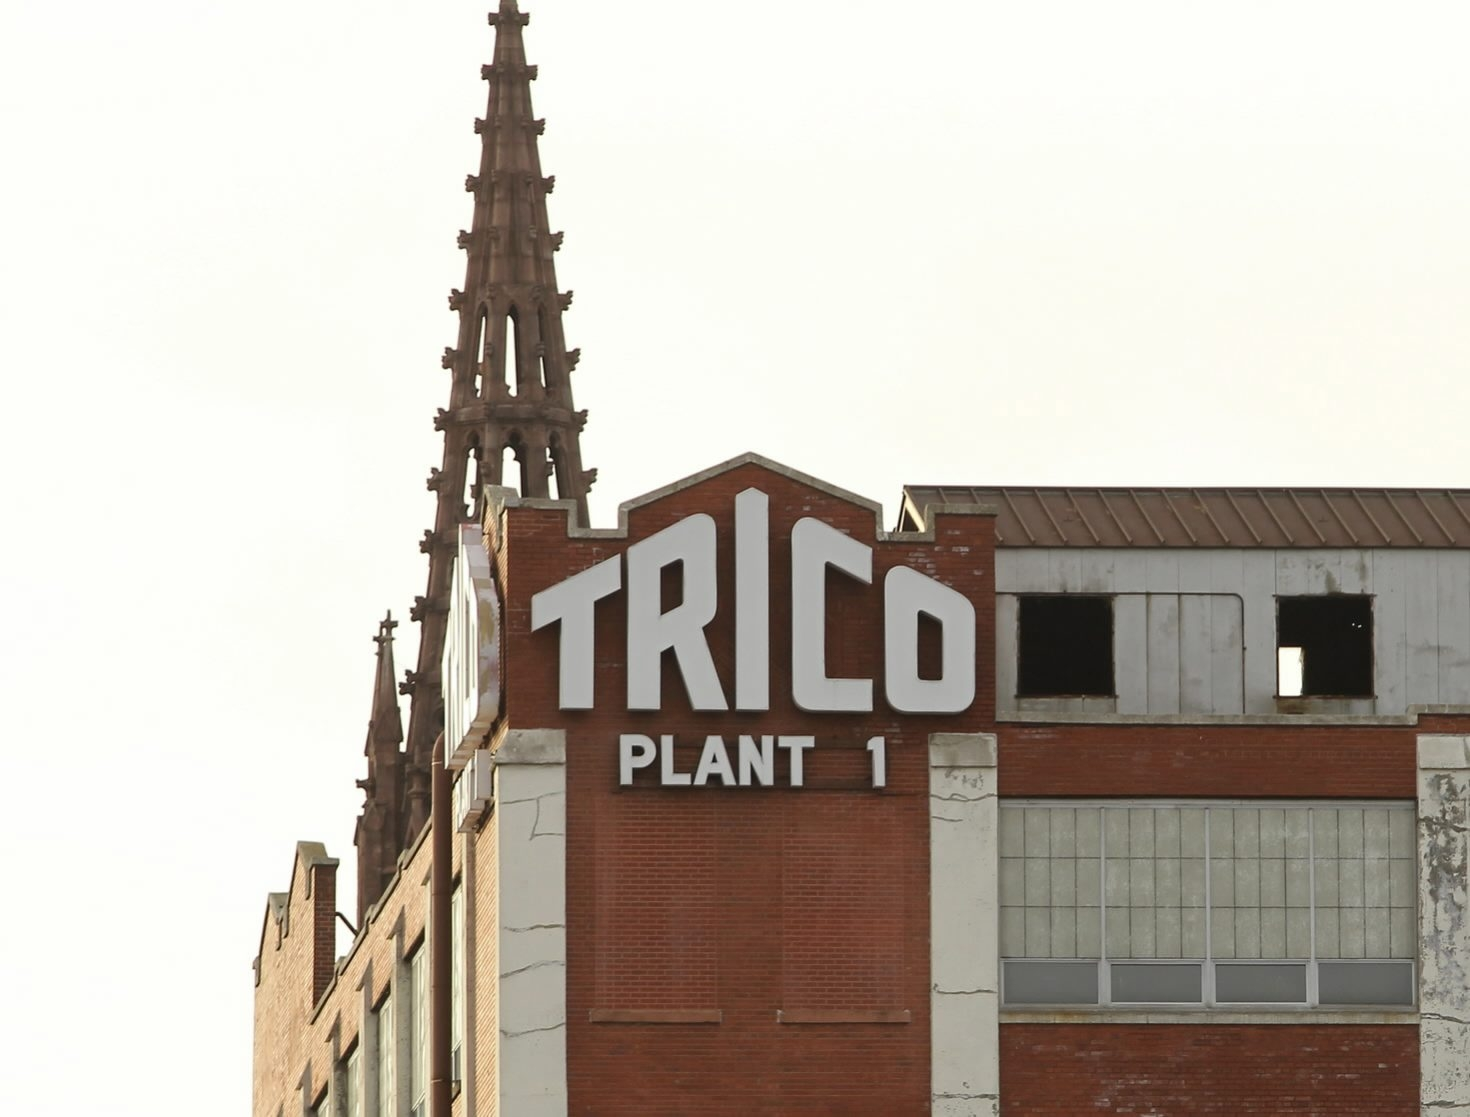 City lawmakers will vote today on whether to designate the Trico complex a local landmark. (Buffalo News file photo)